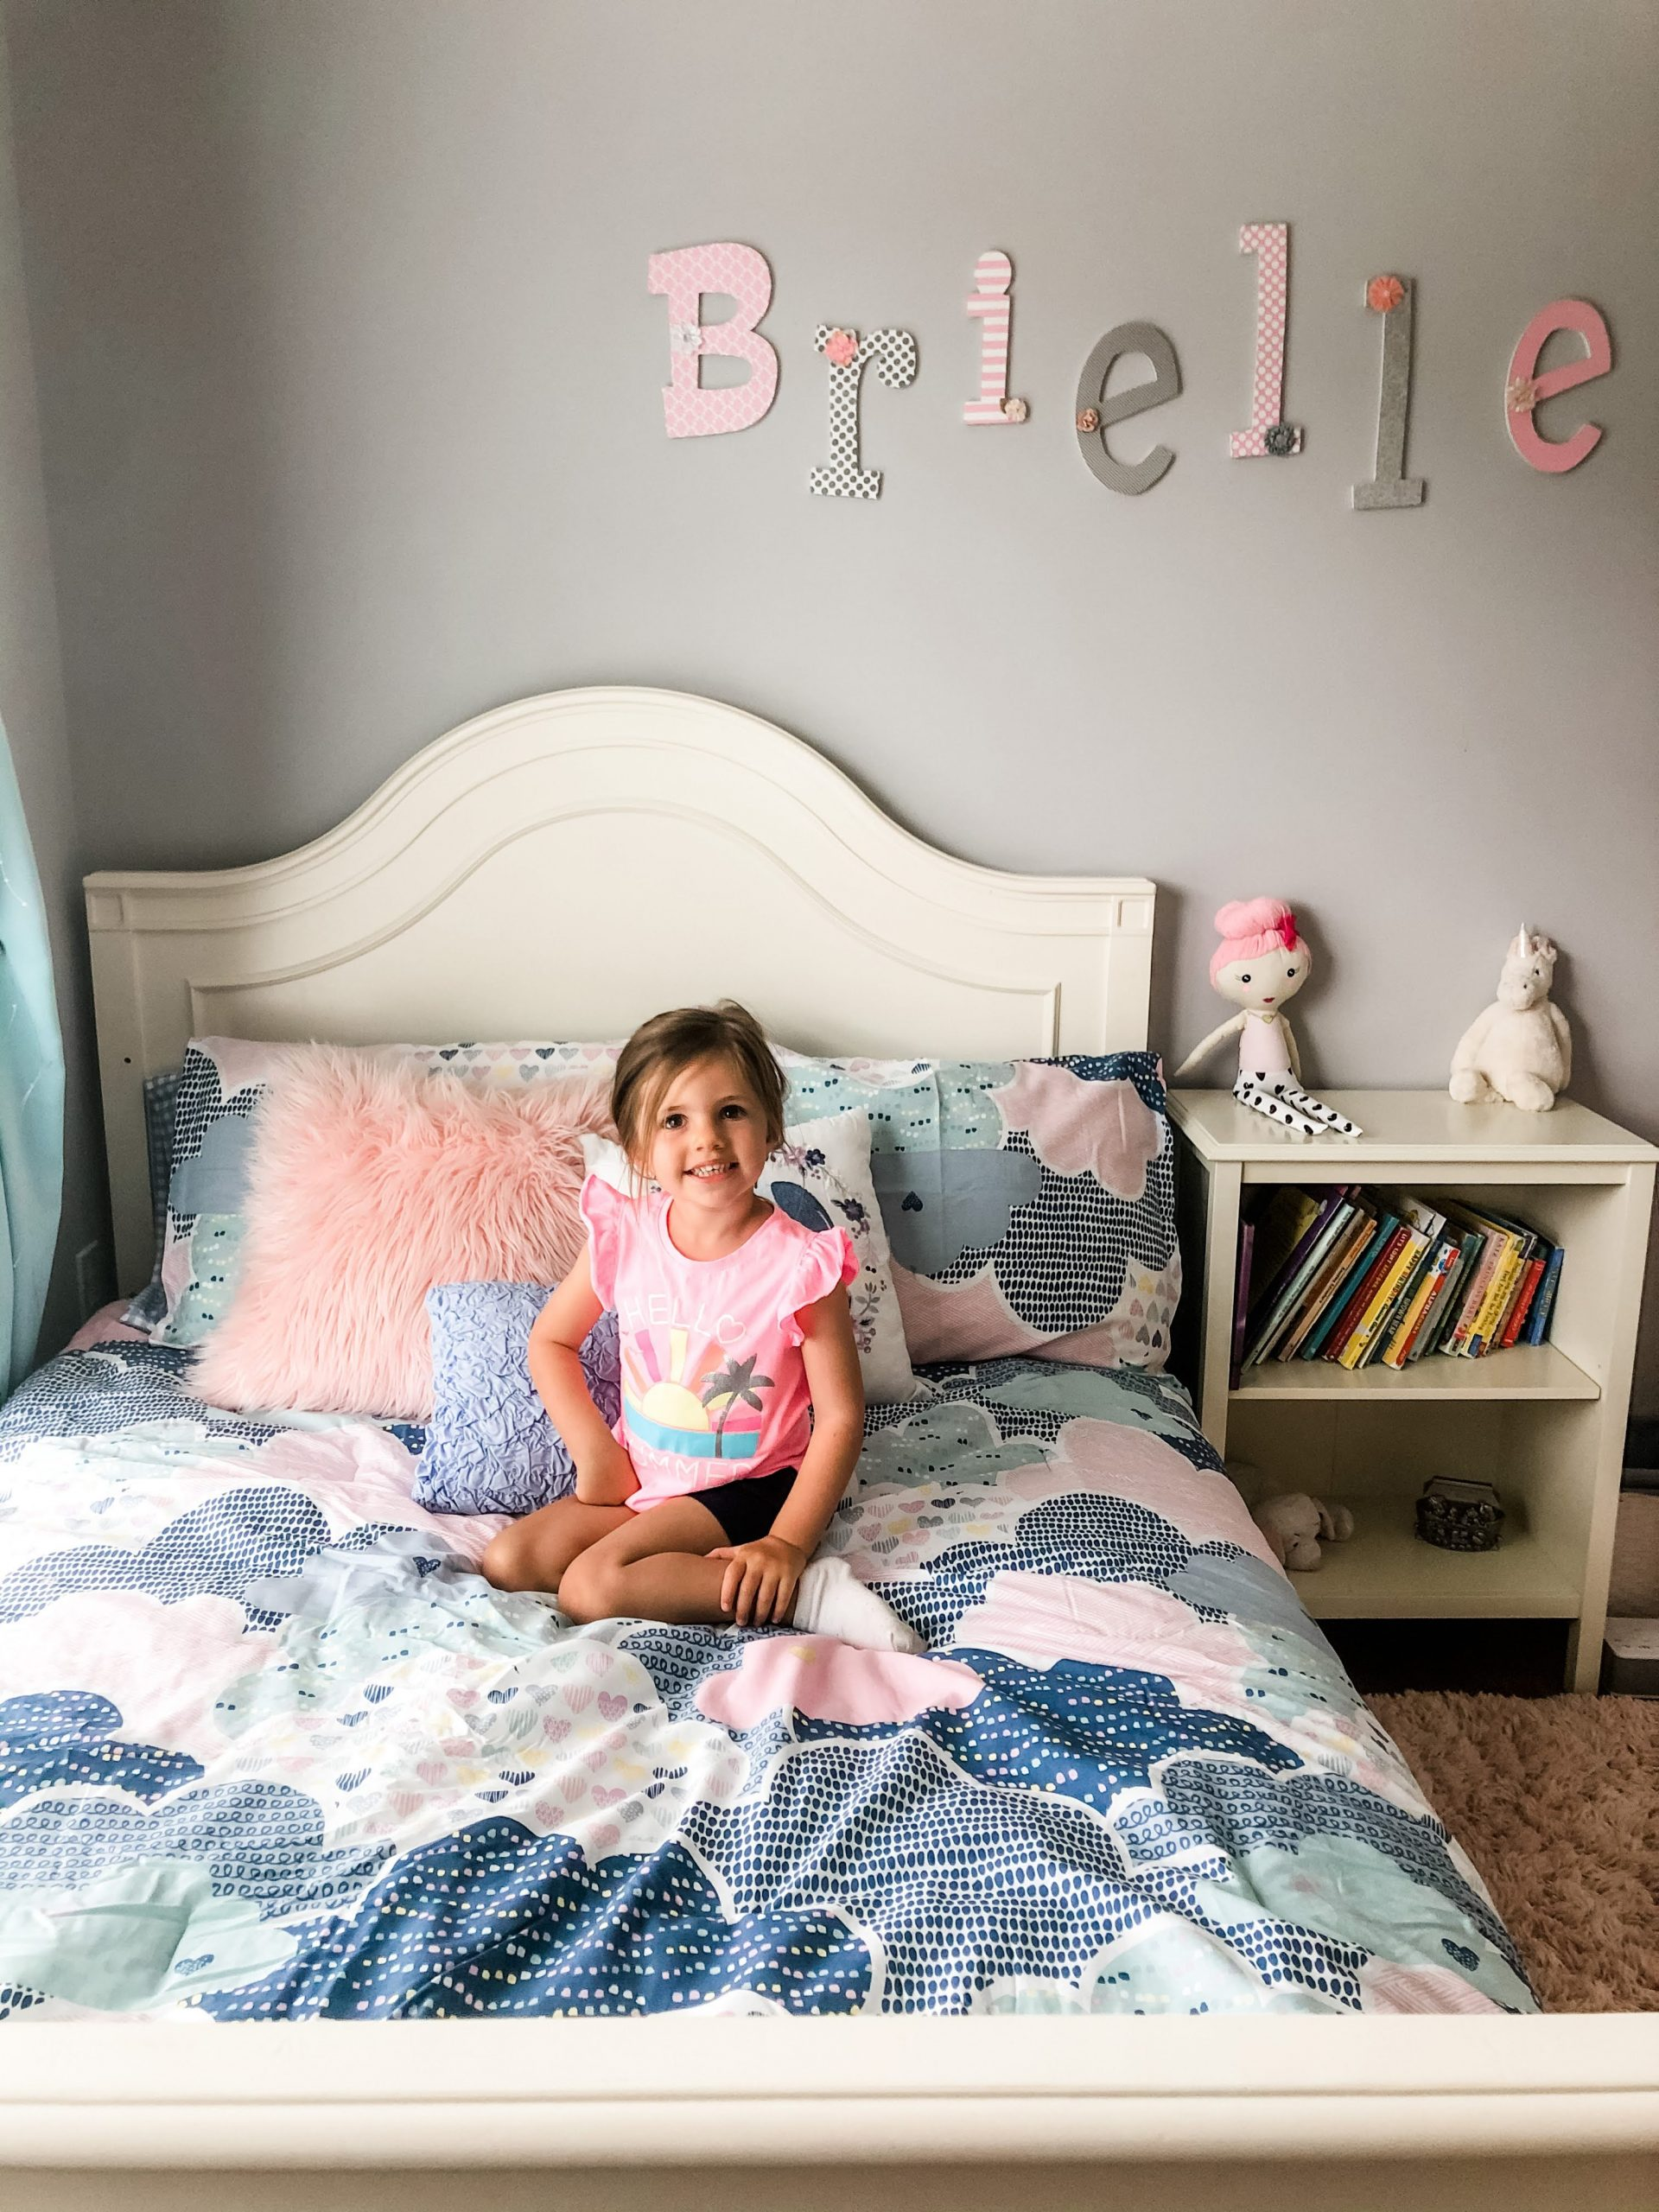 Learn when to transition to a toddler bed or full size bed for your child & tips to make the change easier, safer, & more comfortable on them